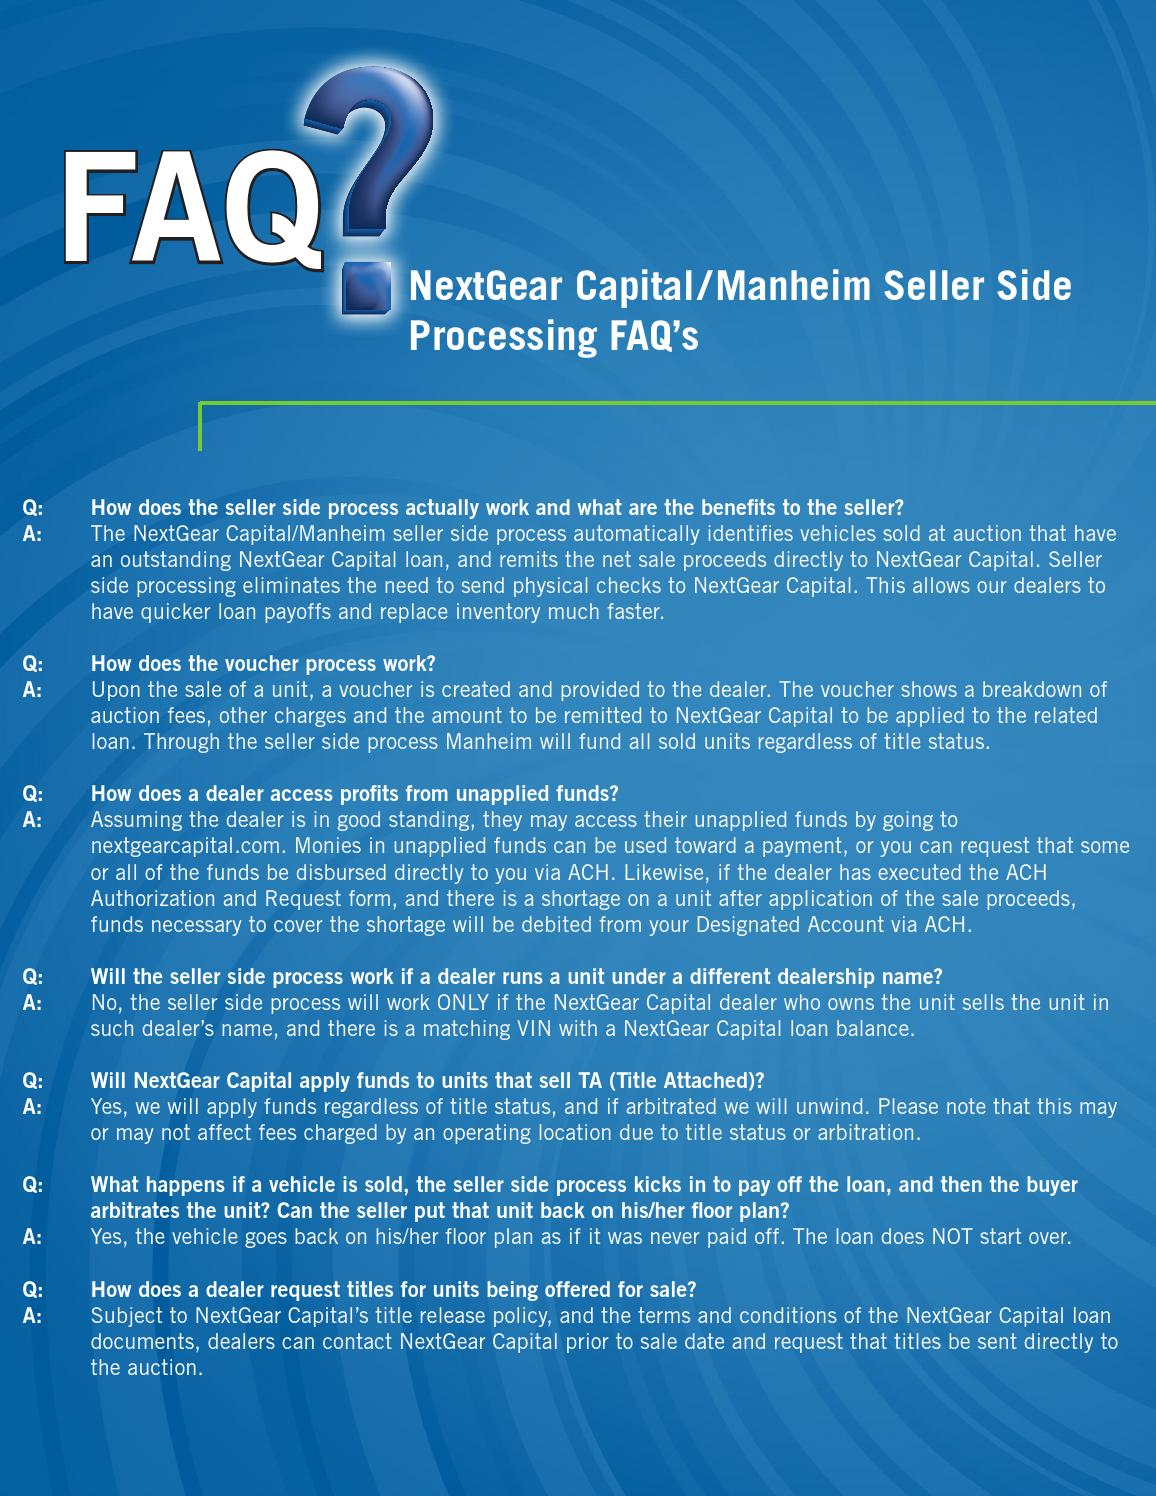 Seller side processing faq sheet by nextgear capital issuu for Manheim floor plan